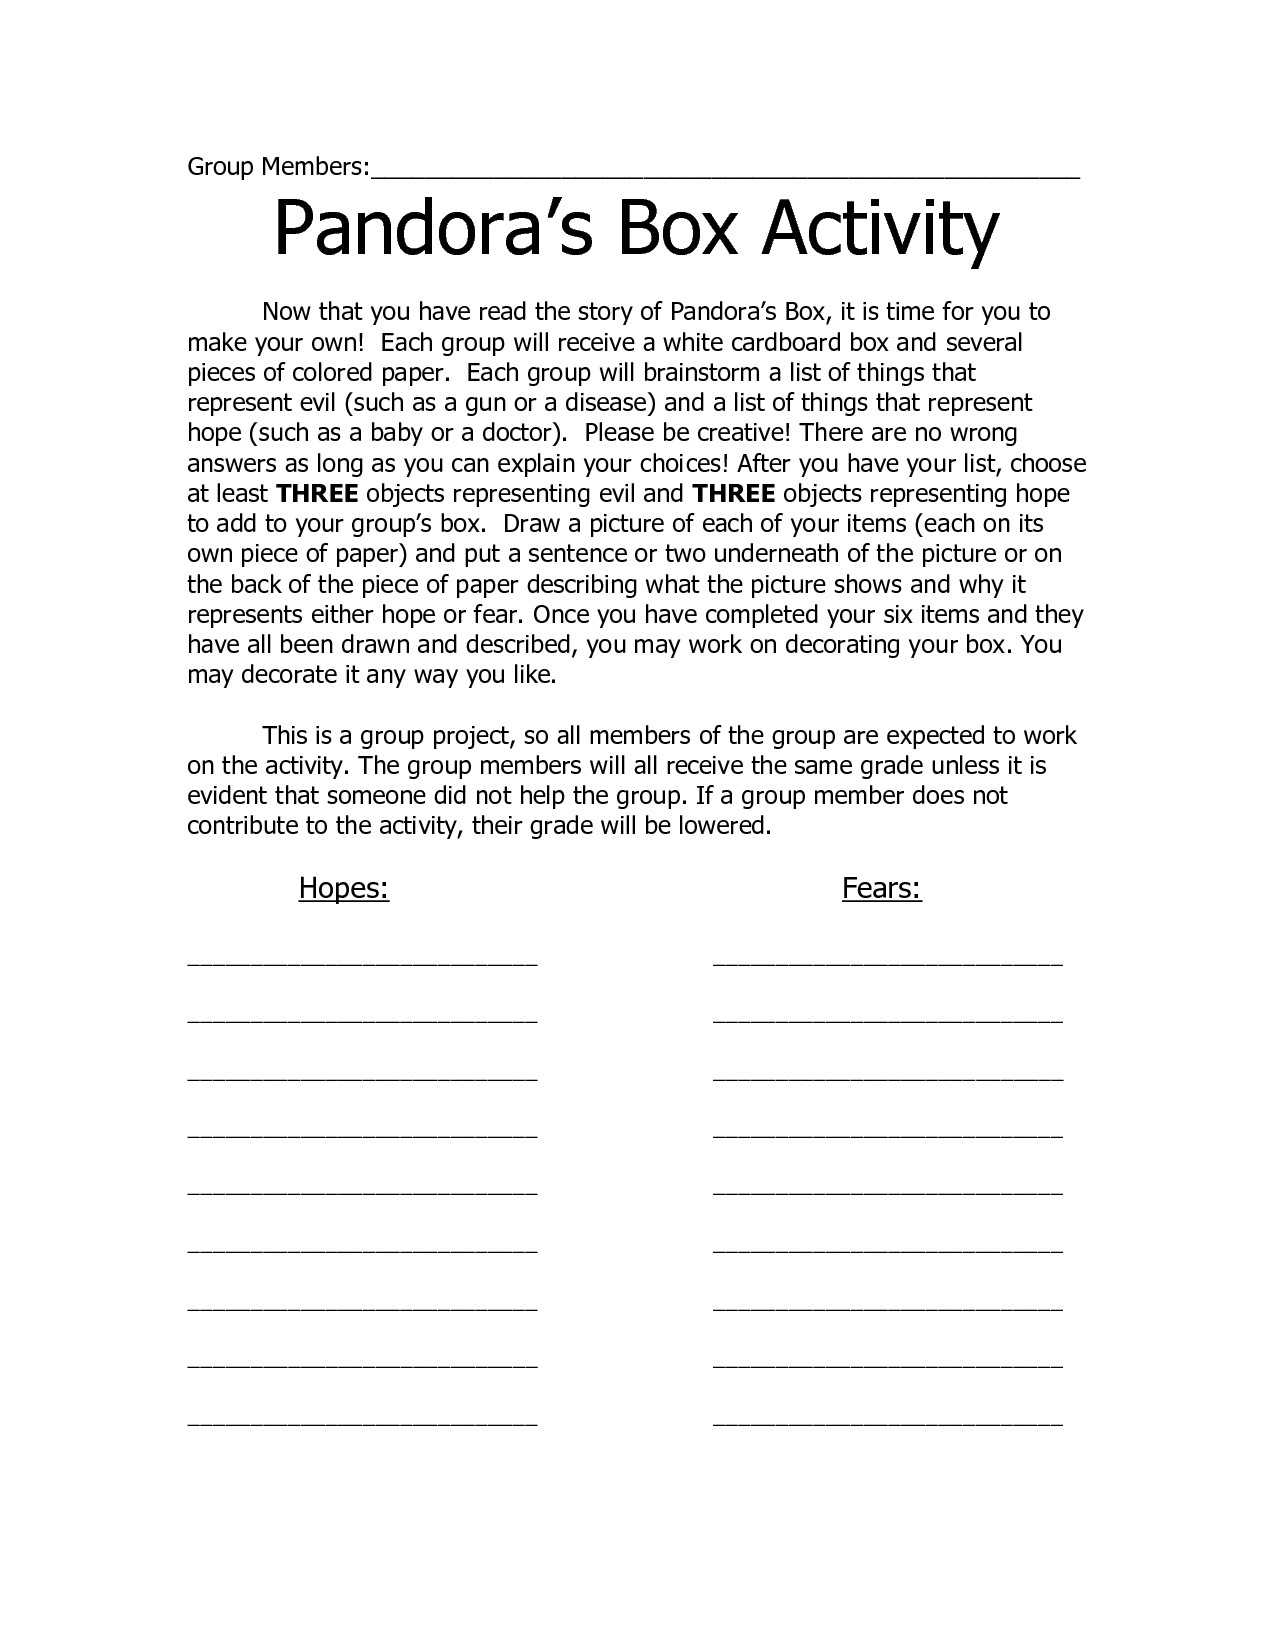 scope of work template pandoras box second grade. Black Bedroom Furniture Sets. Home Design Ideas